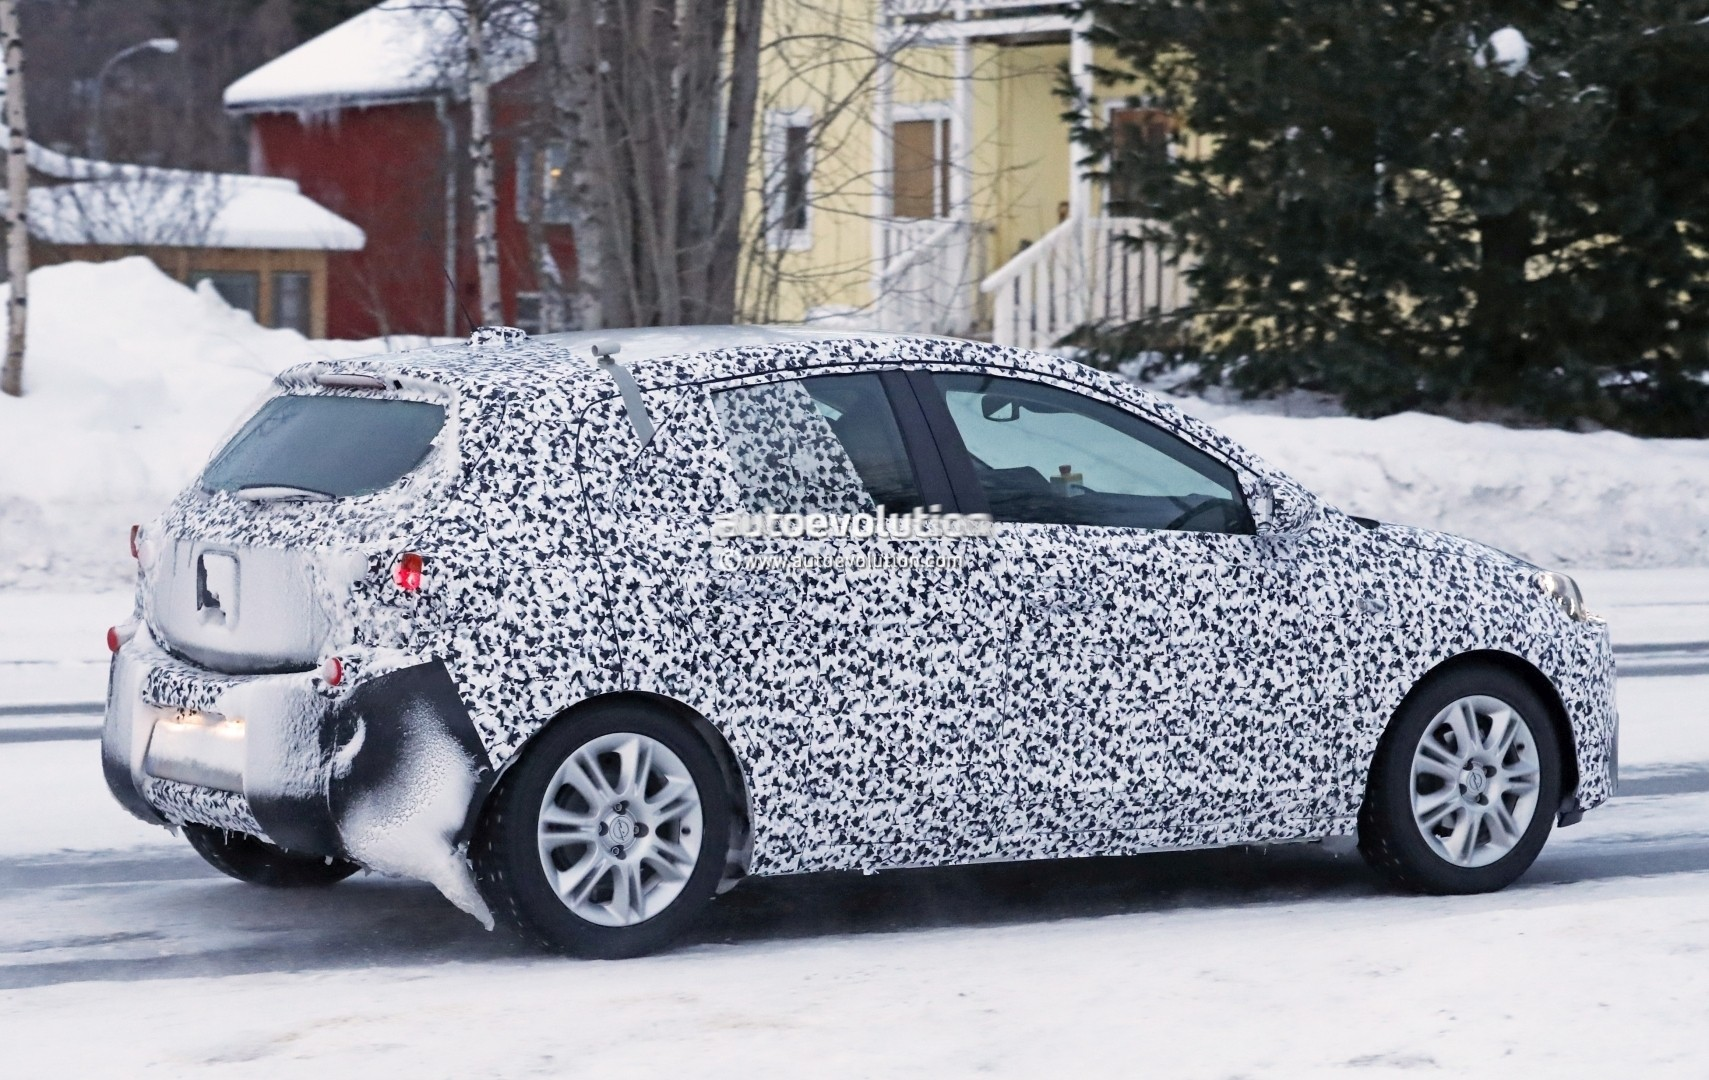 new-2019-opel-corsa-shows-production-headlights-in-latest-spyshots_9